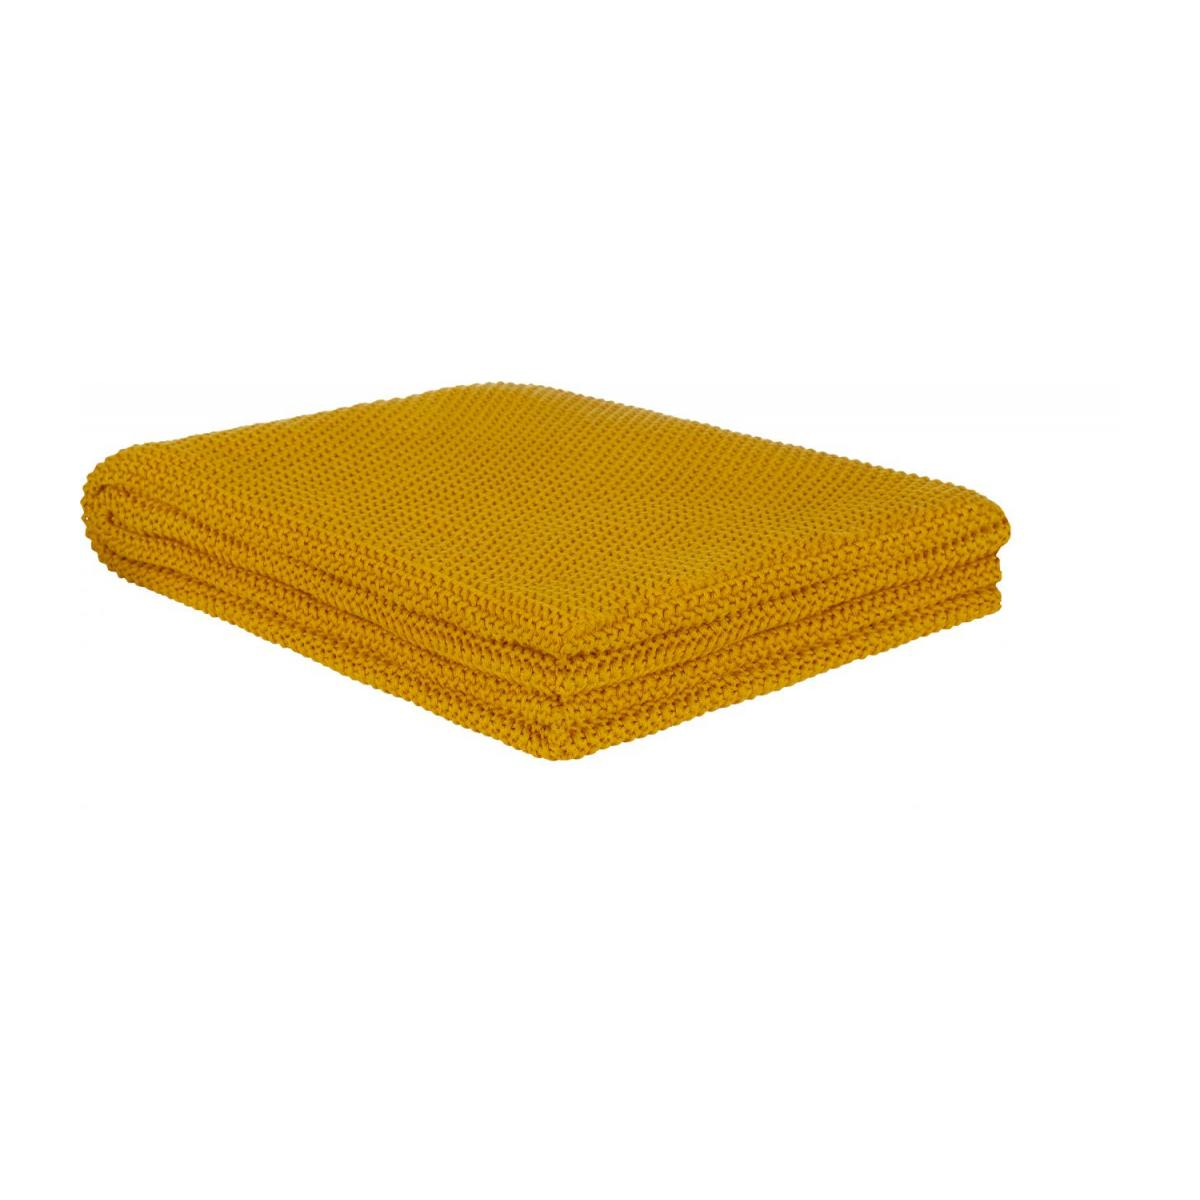 Cotton Knitted Throw 130x170cm Mustard n°1